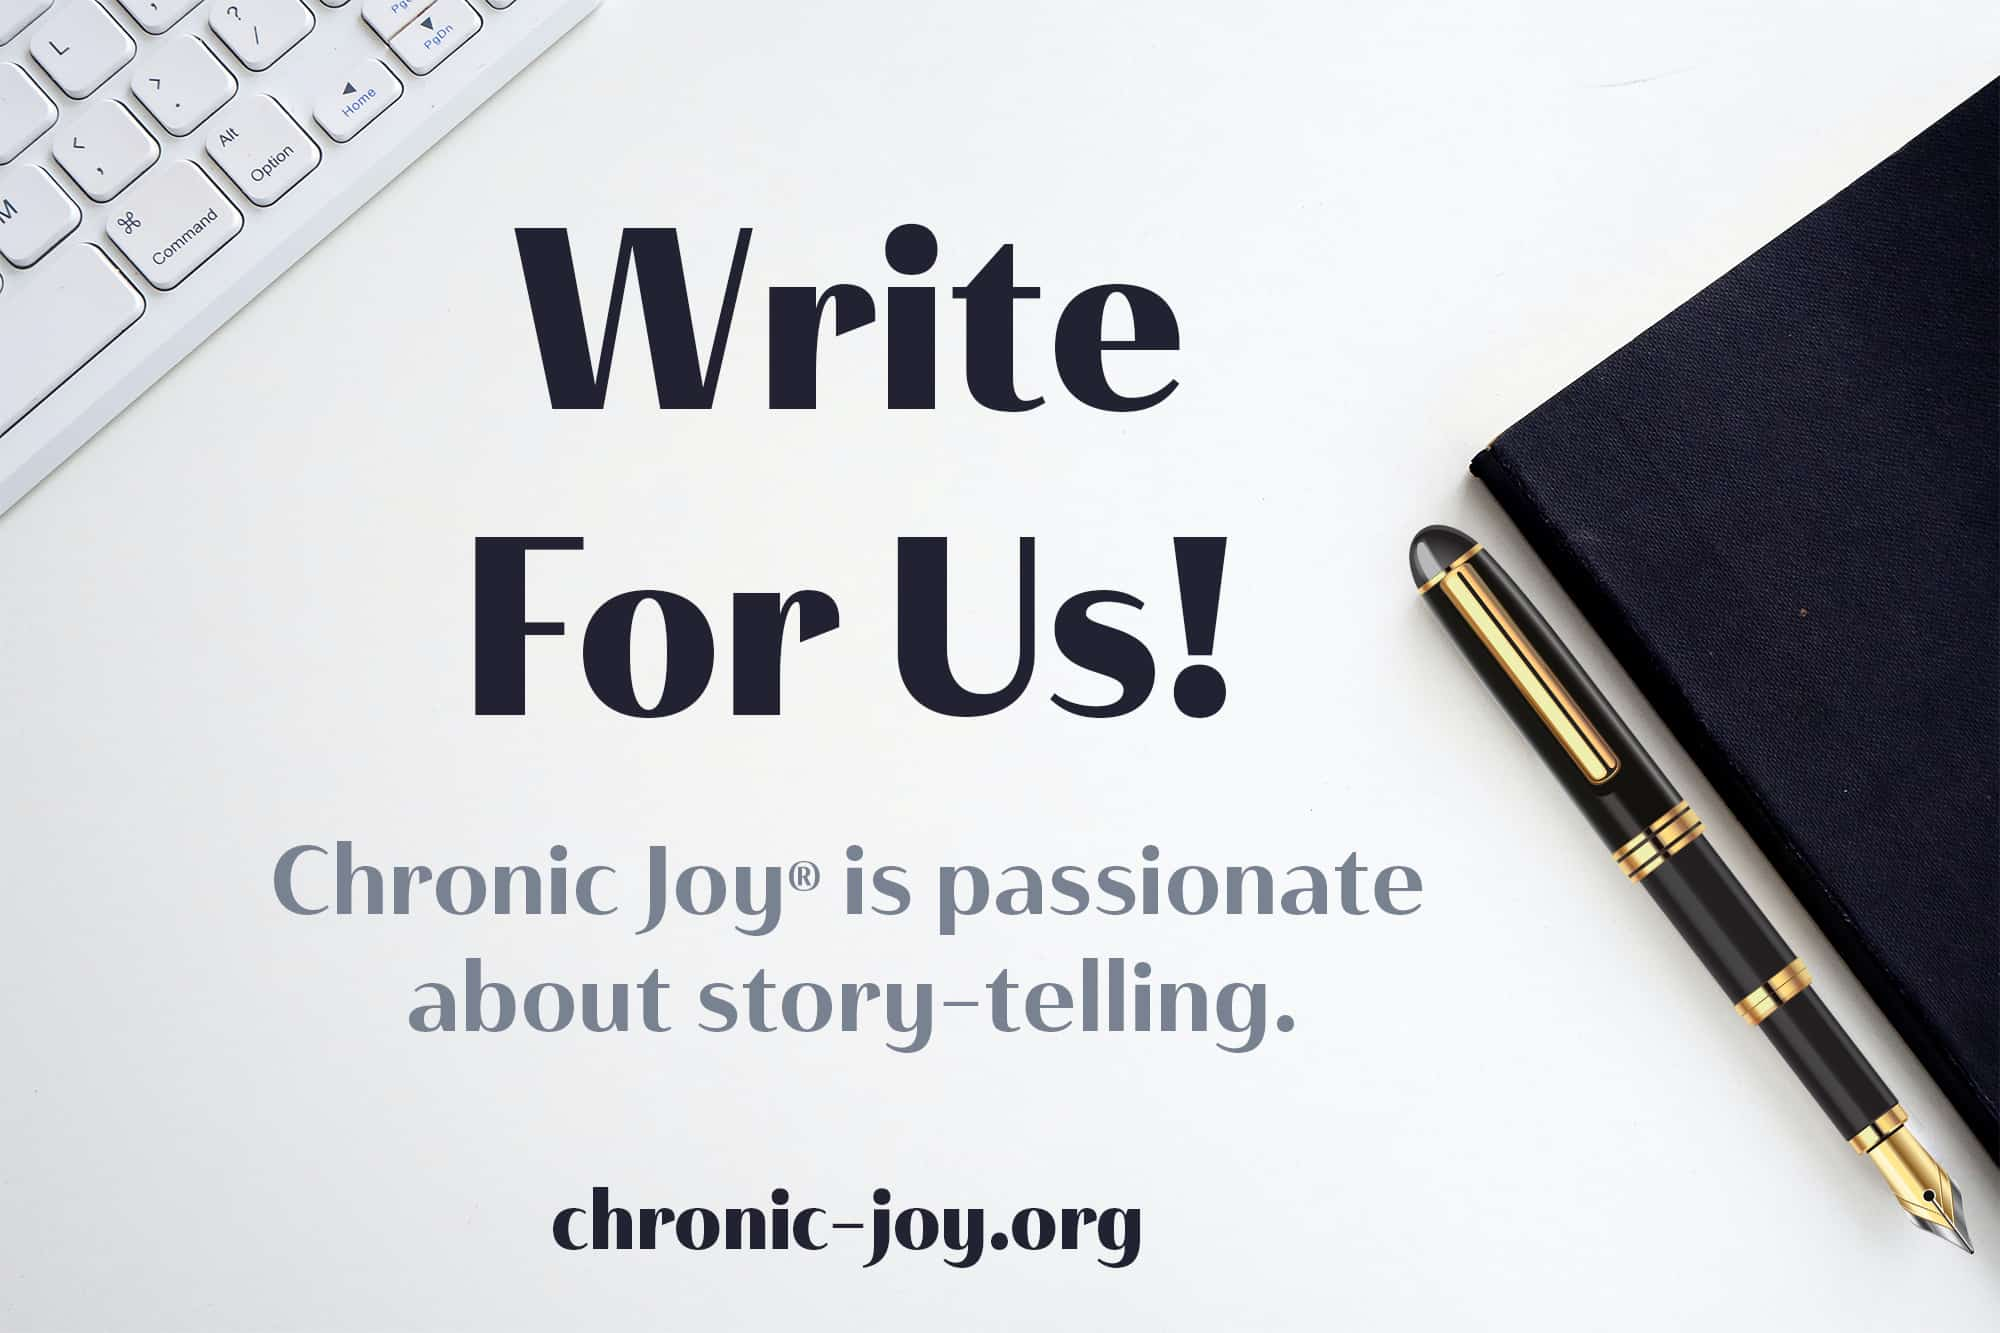 Write for Us! Chronic Joy® is passionate about story-telling.